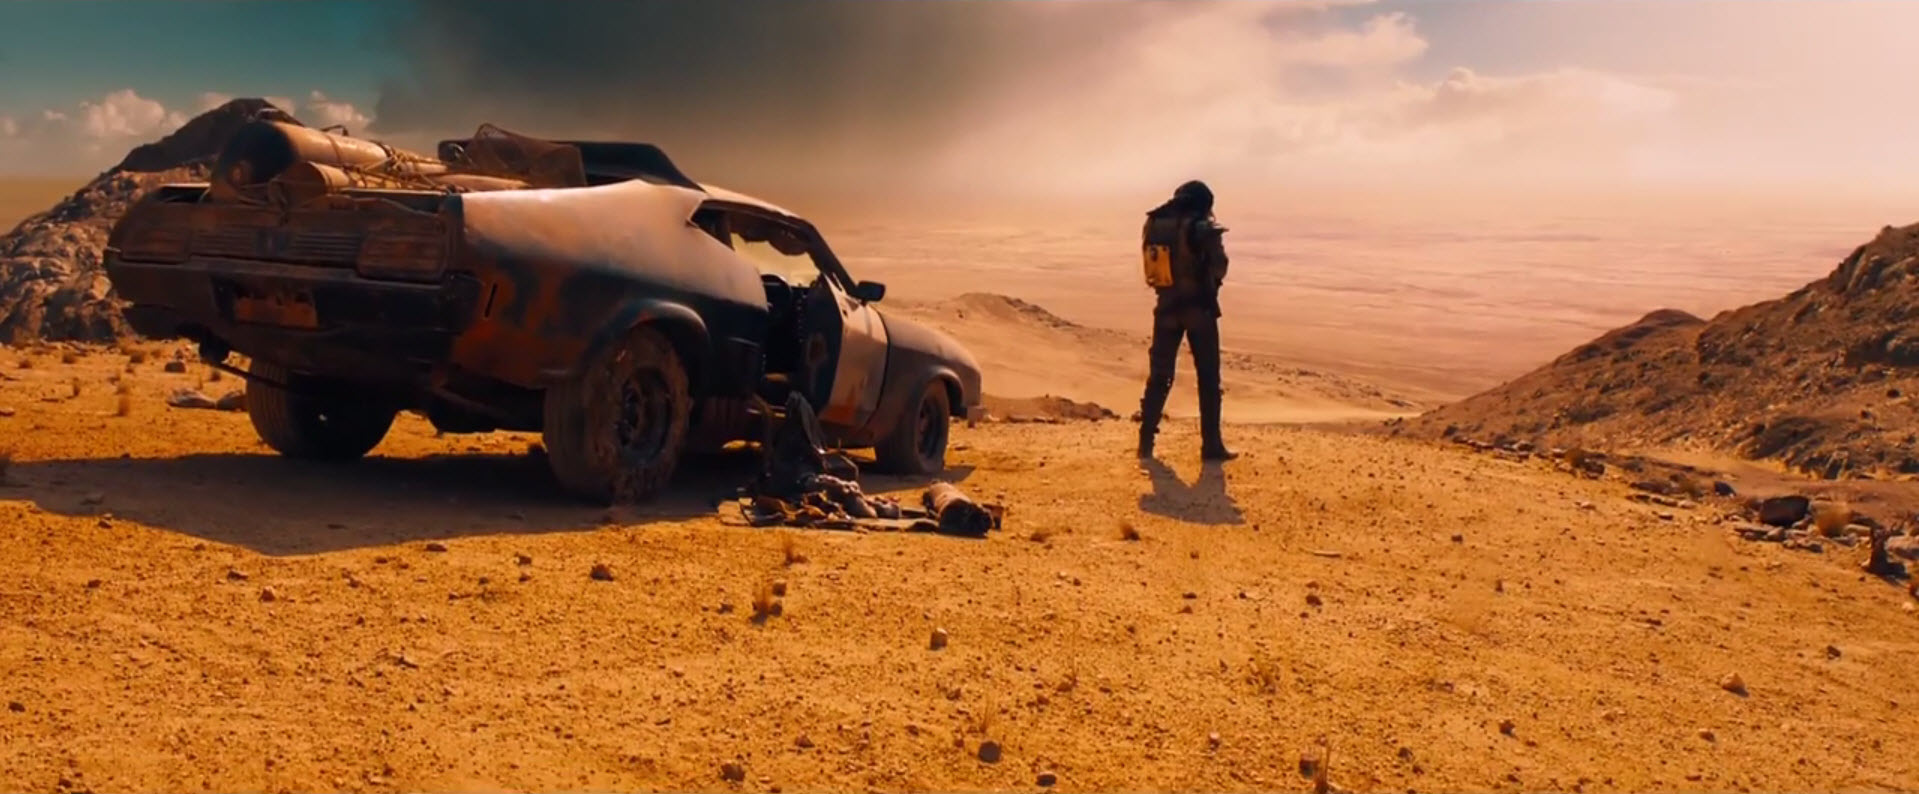 Cars Wallpaper Hd Wallpaper Awesome Mad Max Wallpaper Full Hd Pictures